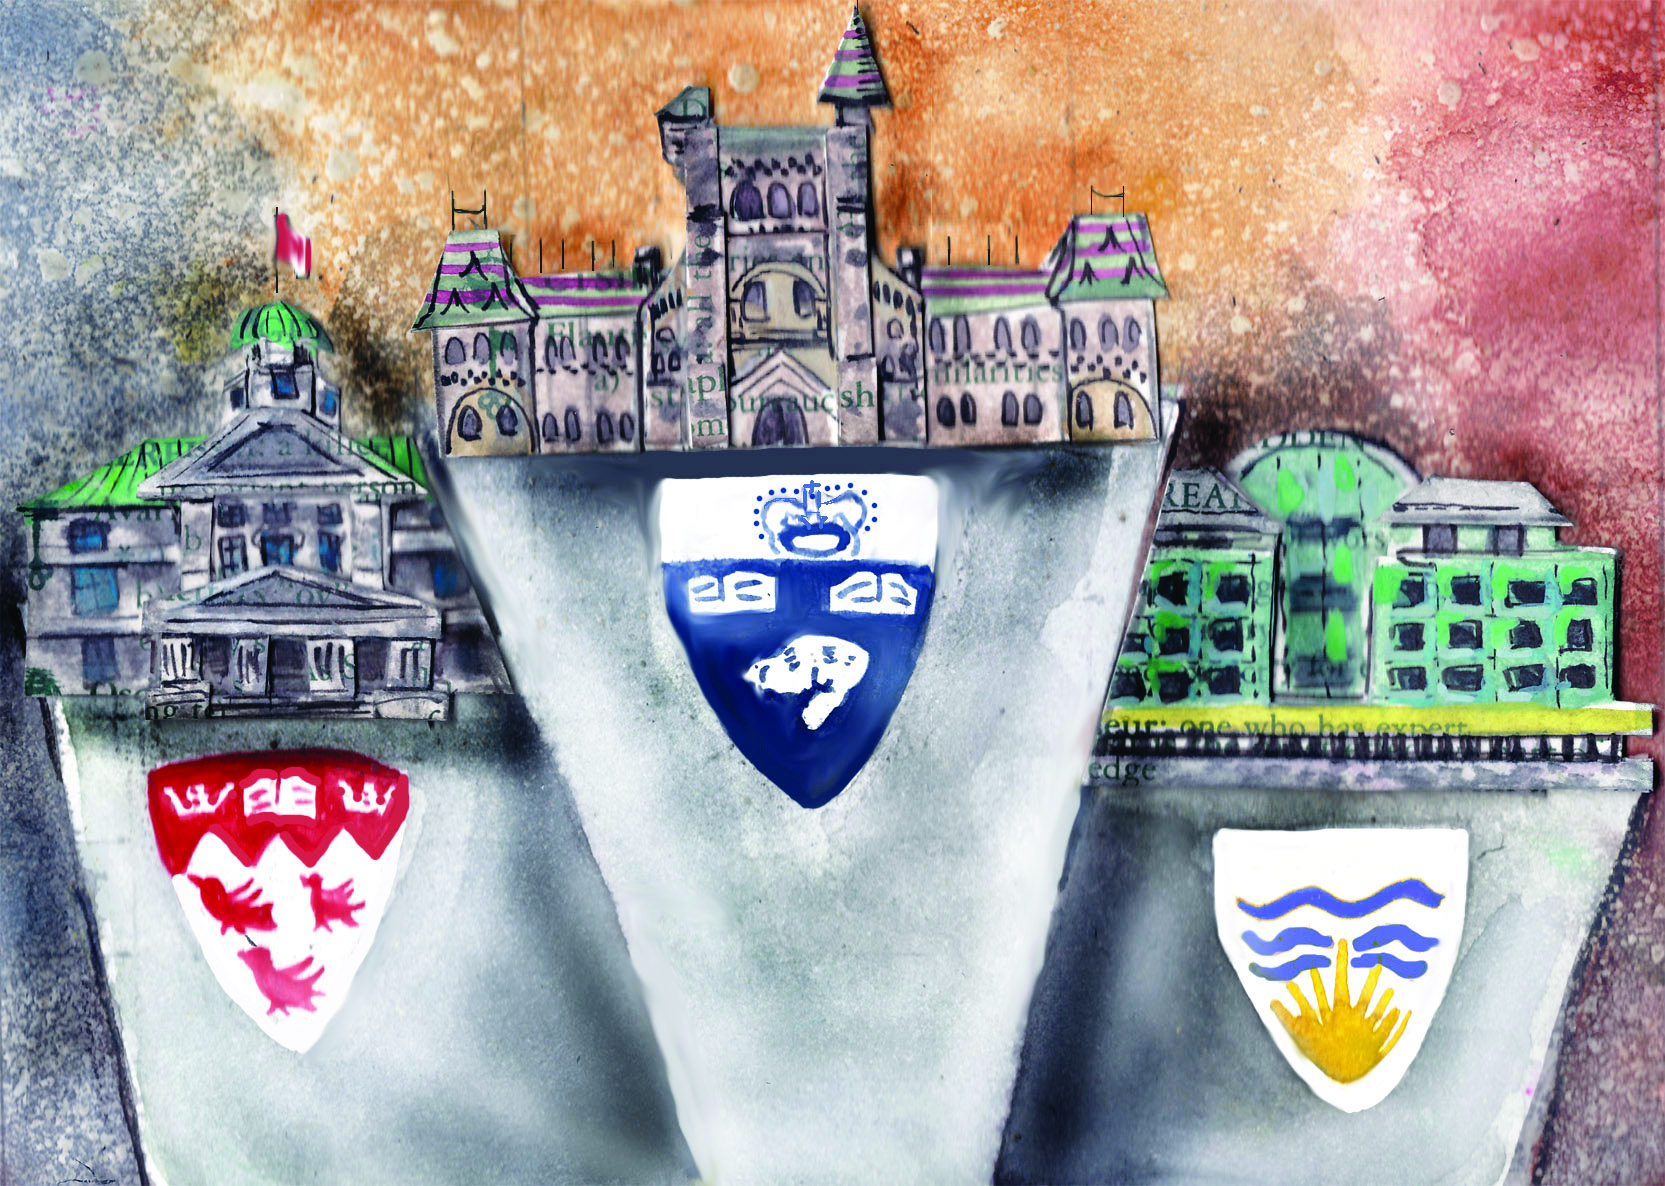 U of T on first, McGill on second, UBC on third (Illustration by Amber Solberg)